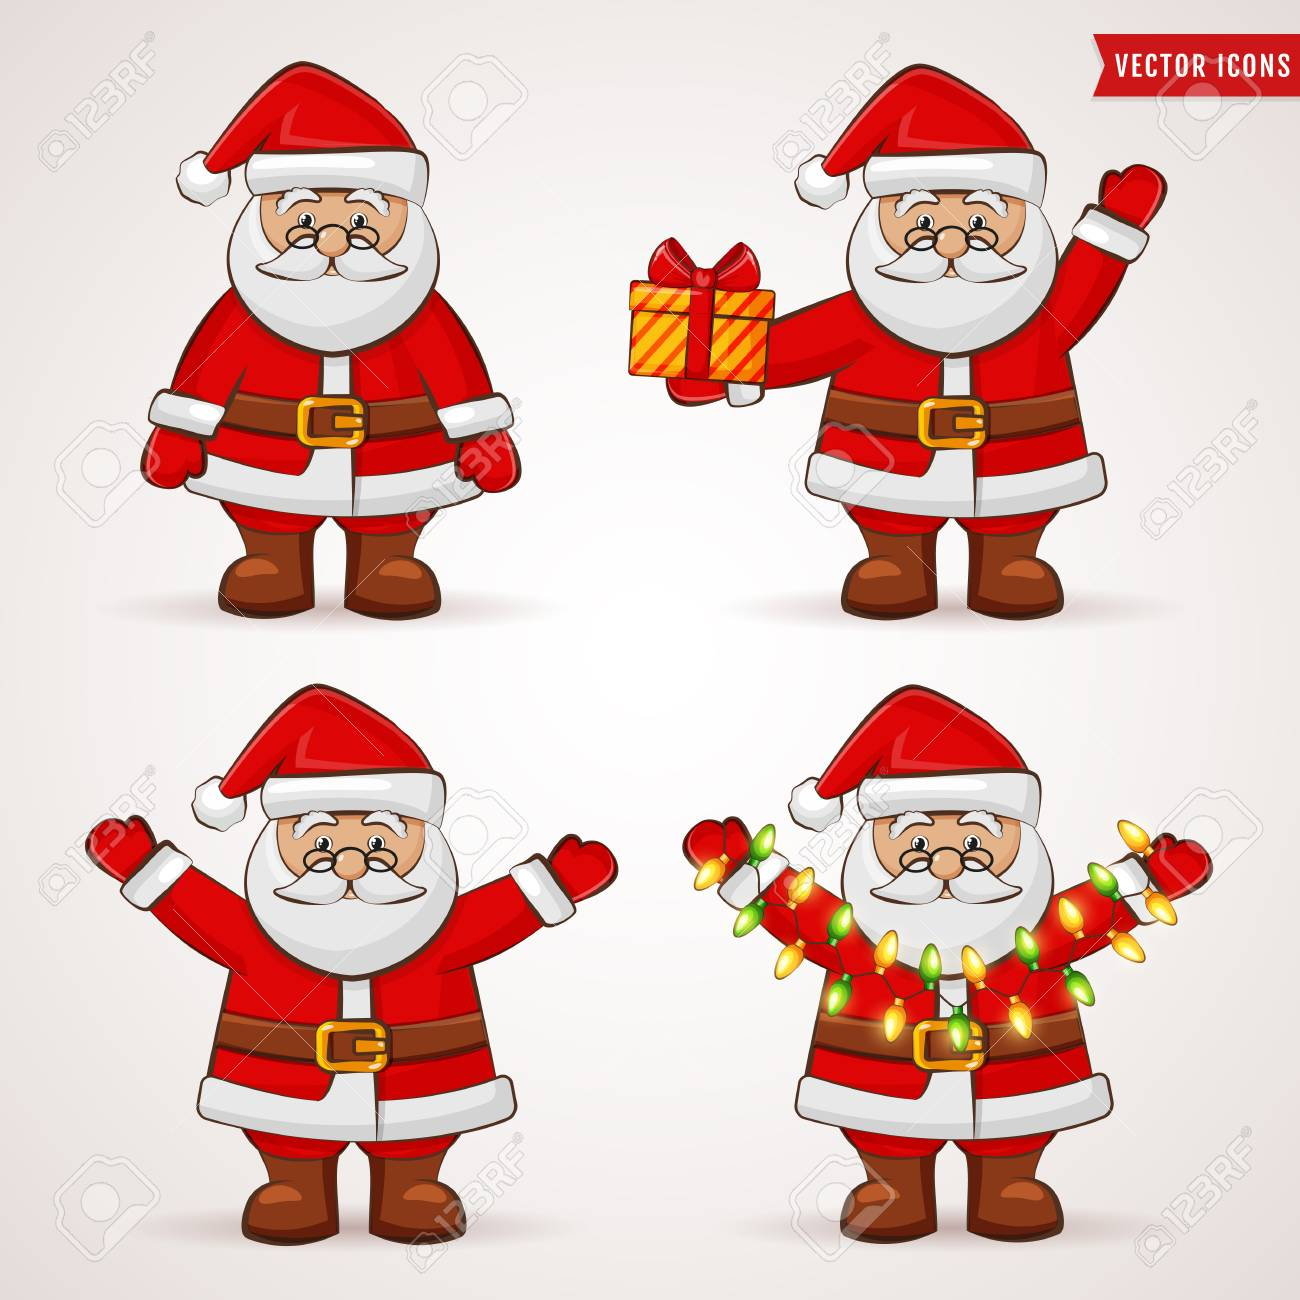 santa claus cute cartoon characters christmas and new year themes vector illustration